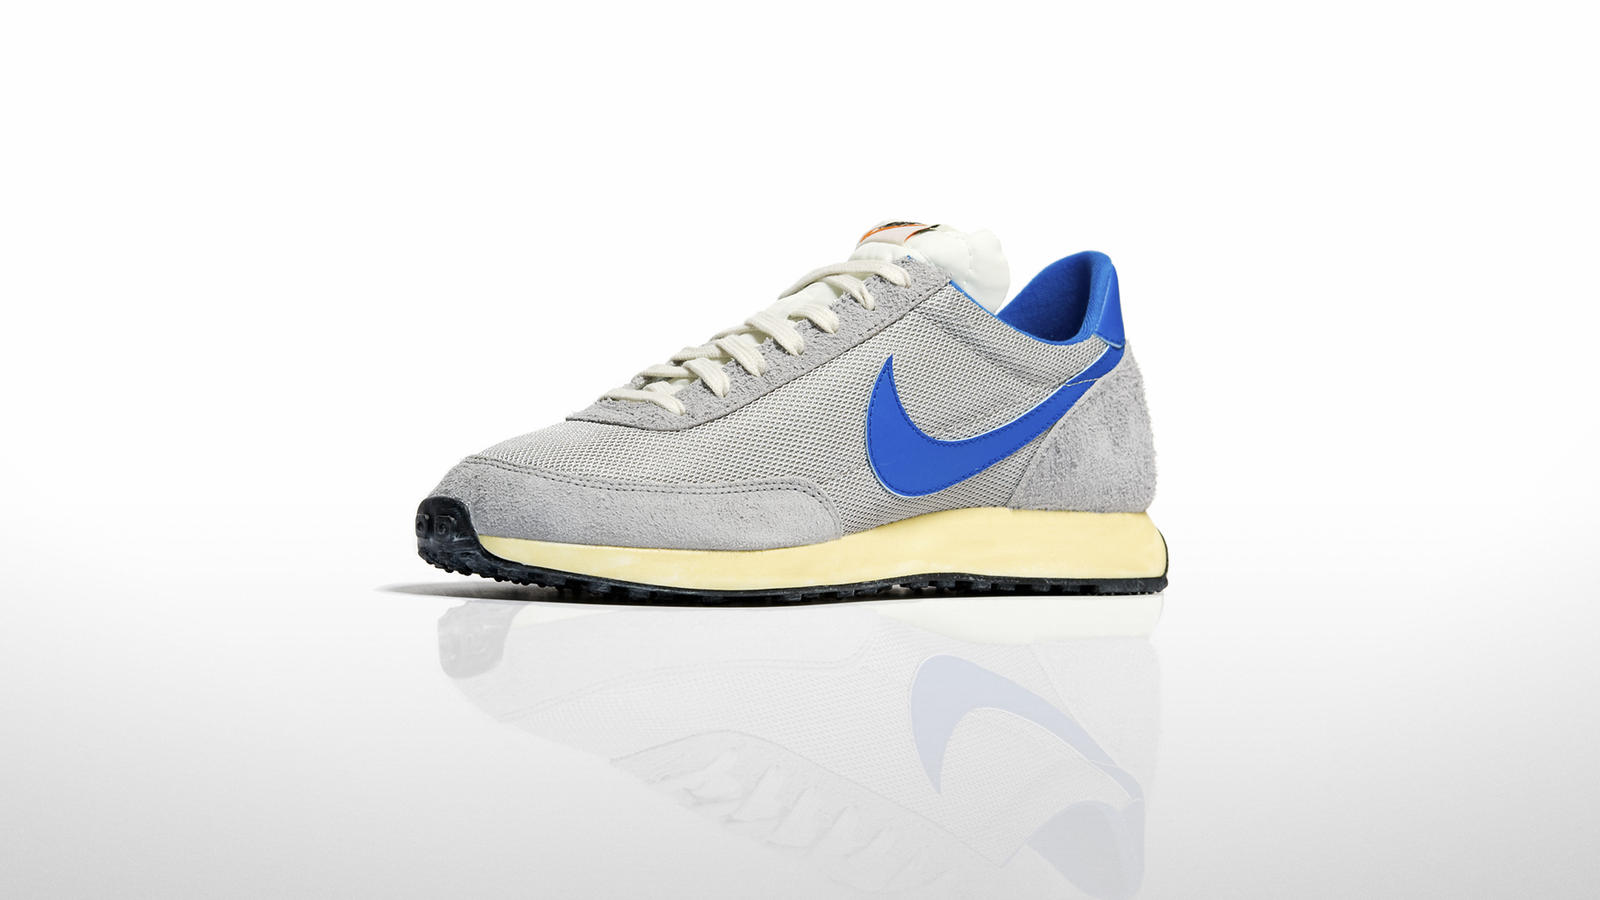 hot sales 88e36 366f5 Reintroducing the Nike Tailwind - Nike News